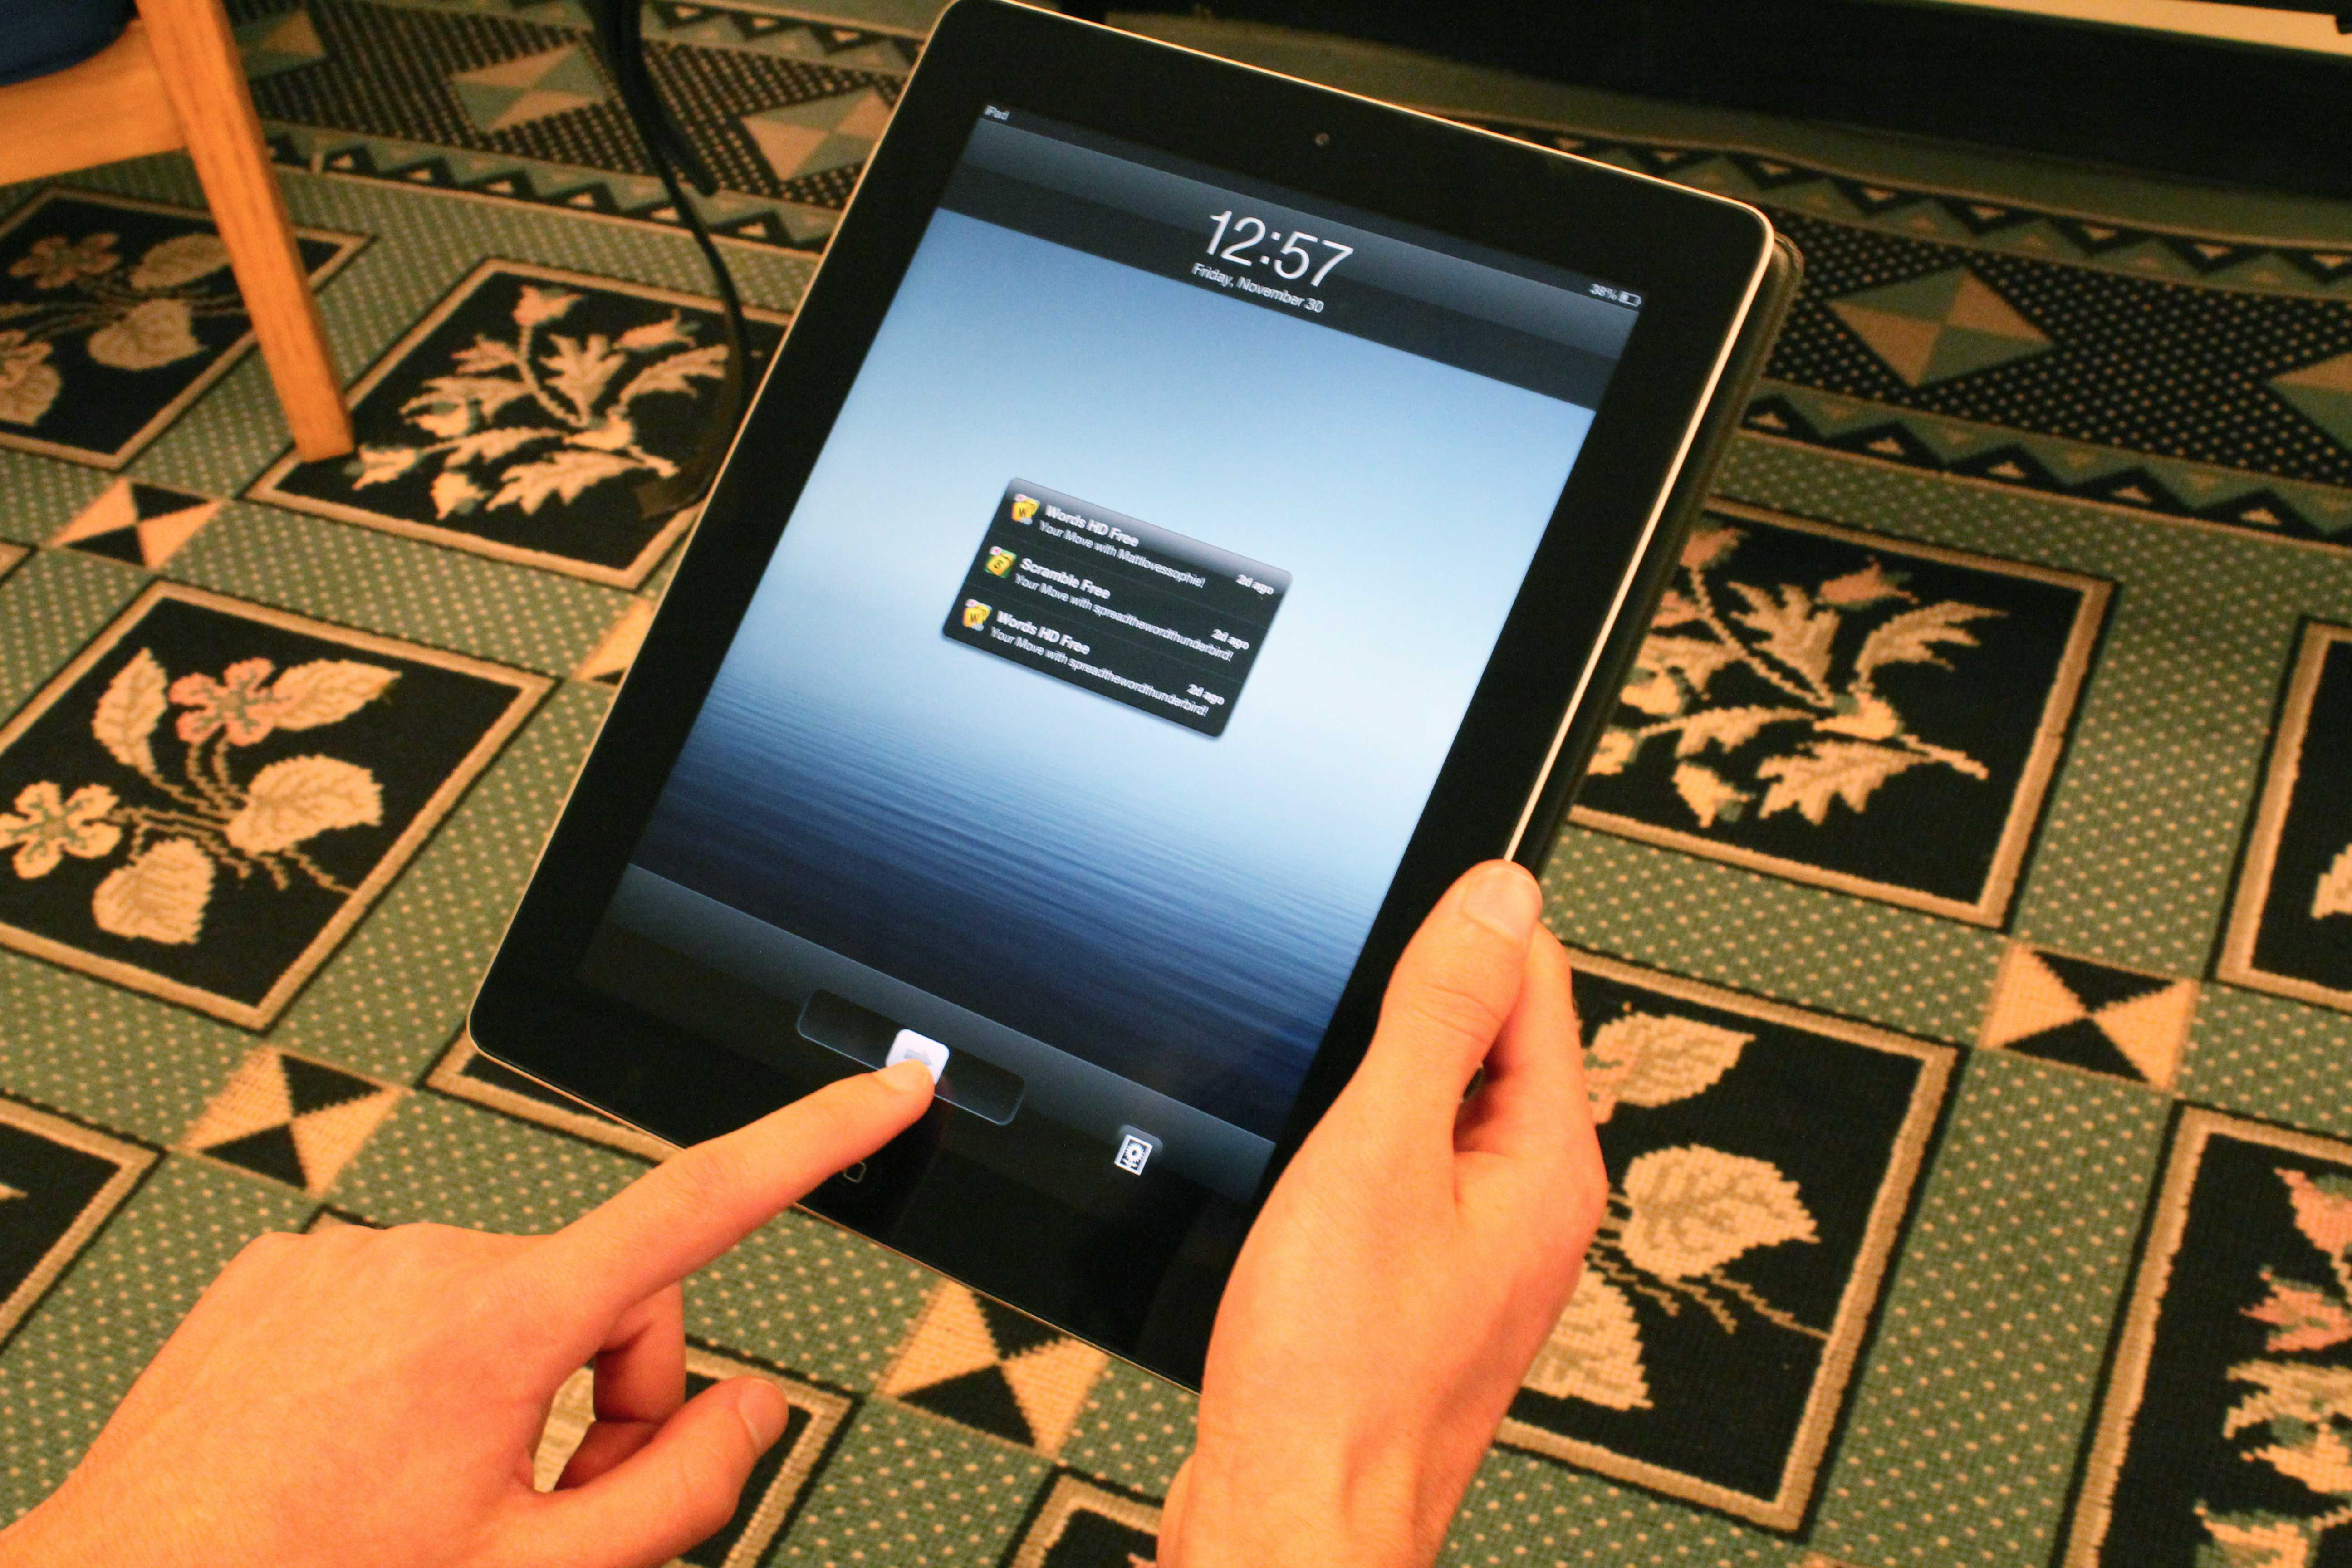 iPad 4 comes with no major changes